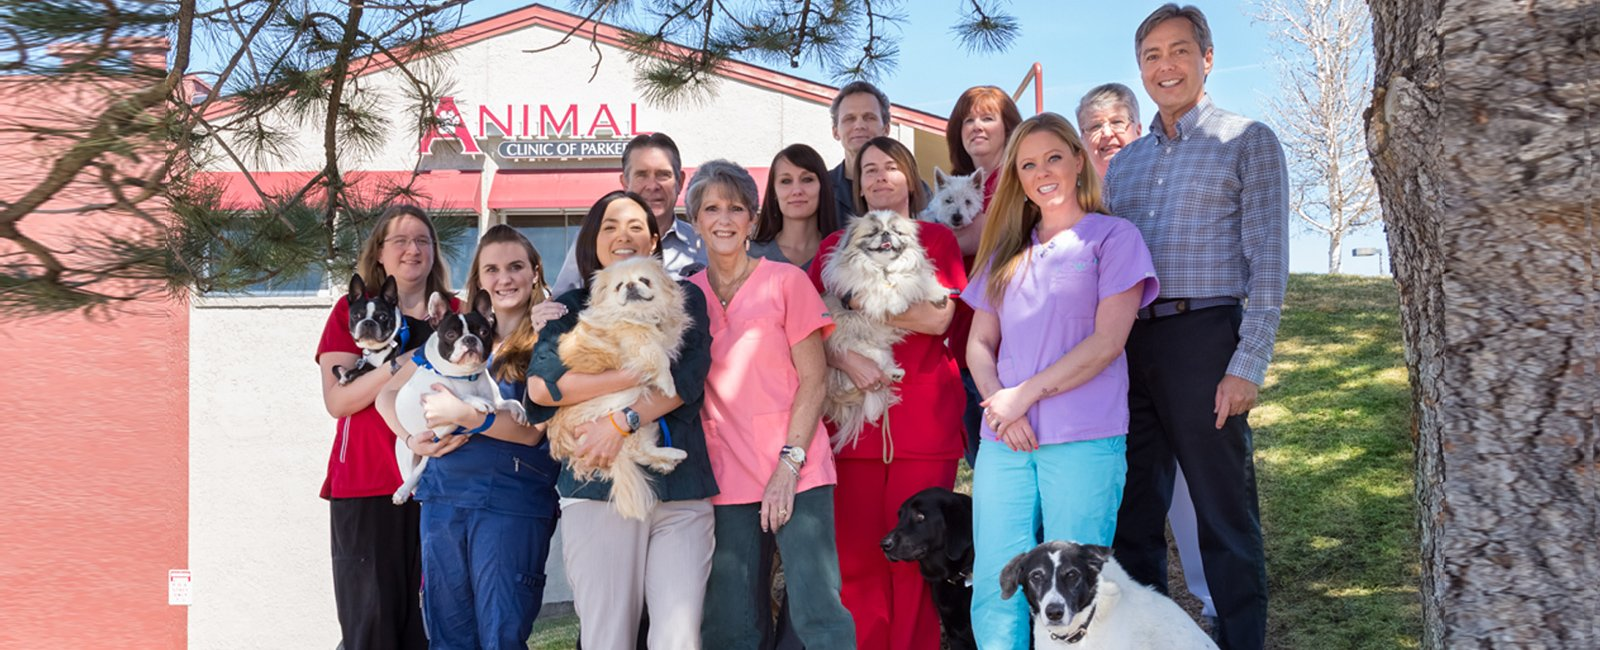 Team Picture of VCA Animal Clinic of Parker